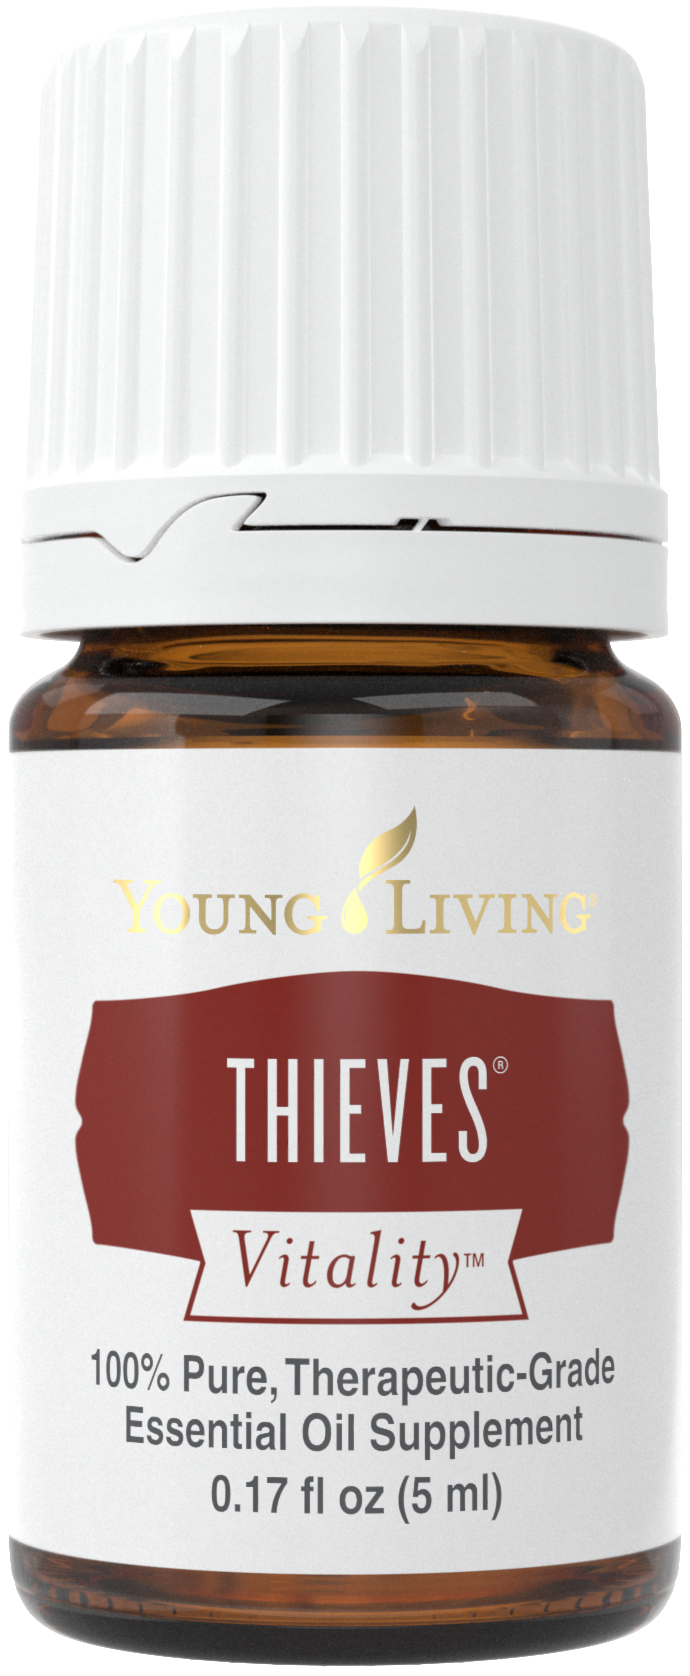 thieves_5ml_suplement_silo_2016_24294199552_o.png